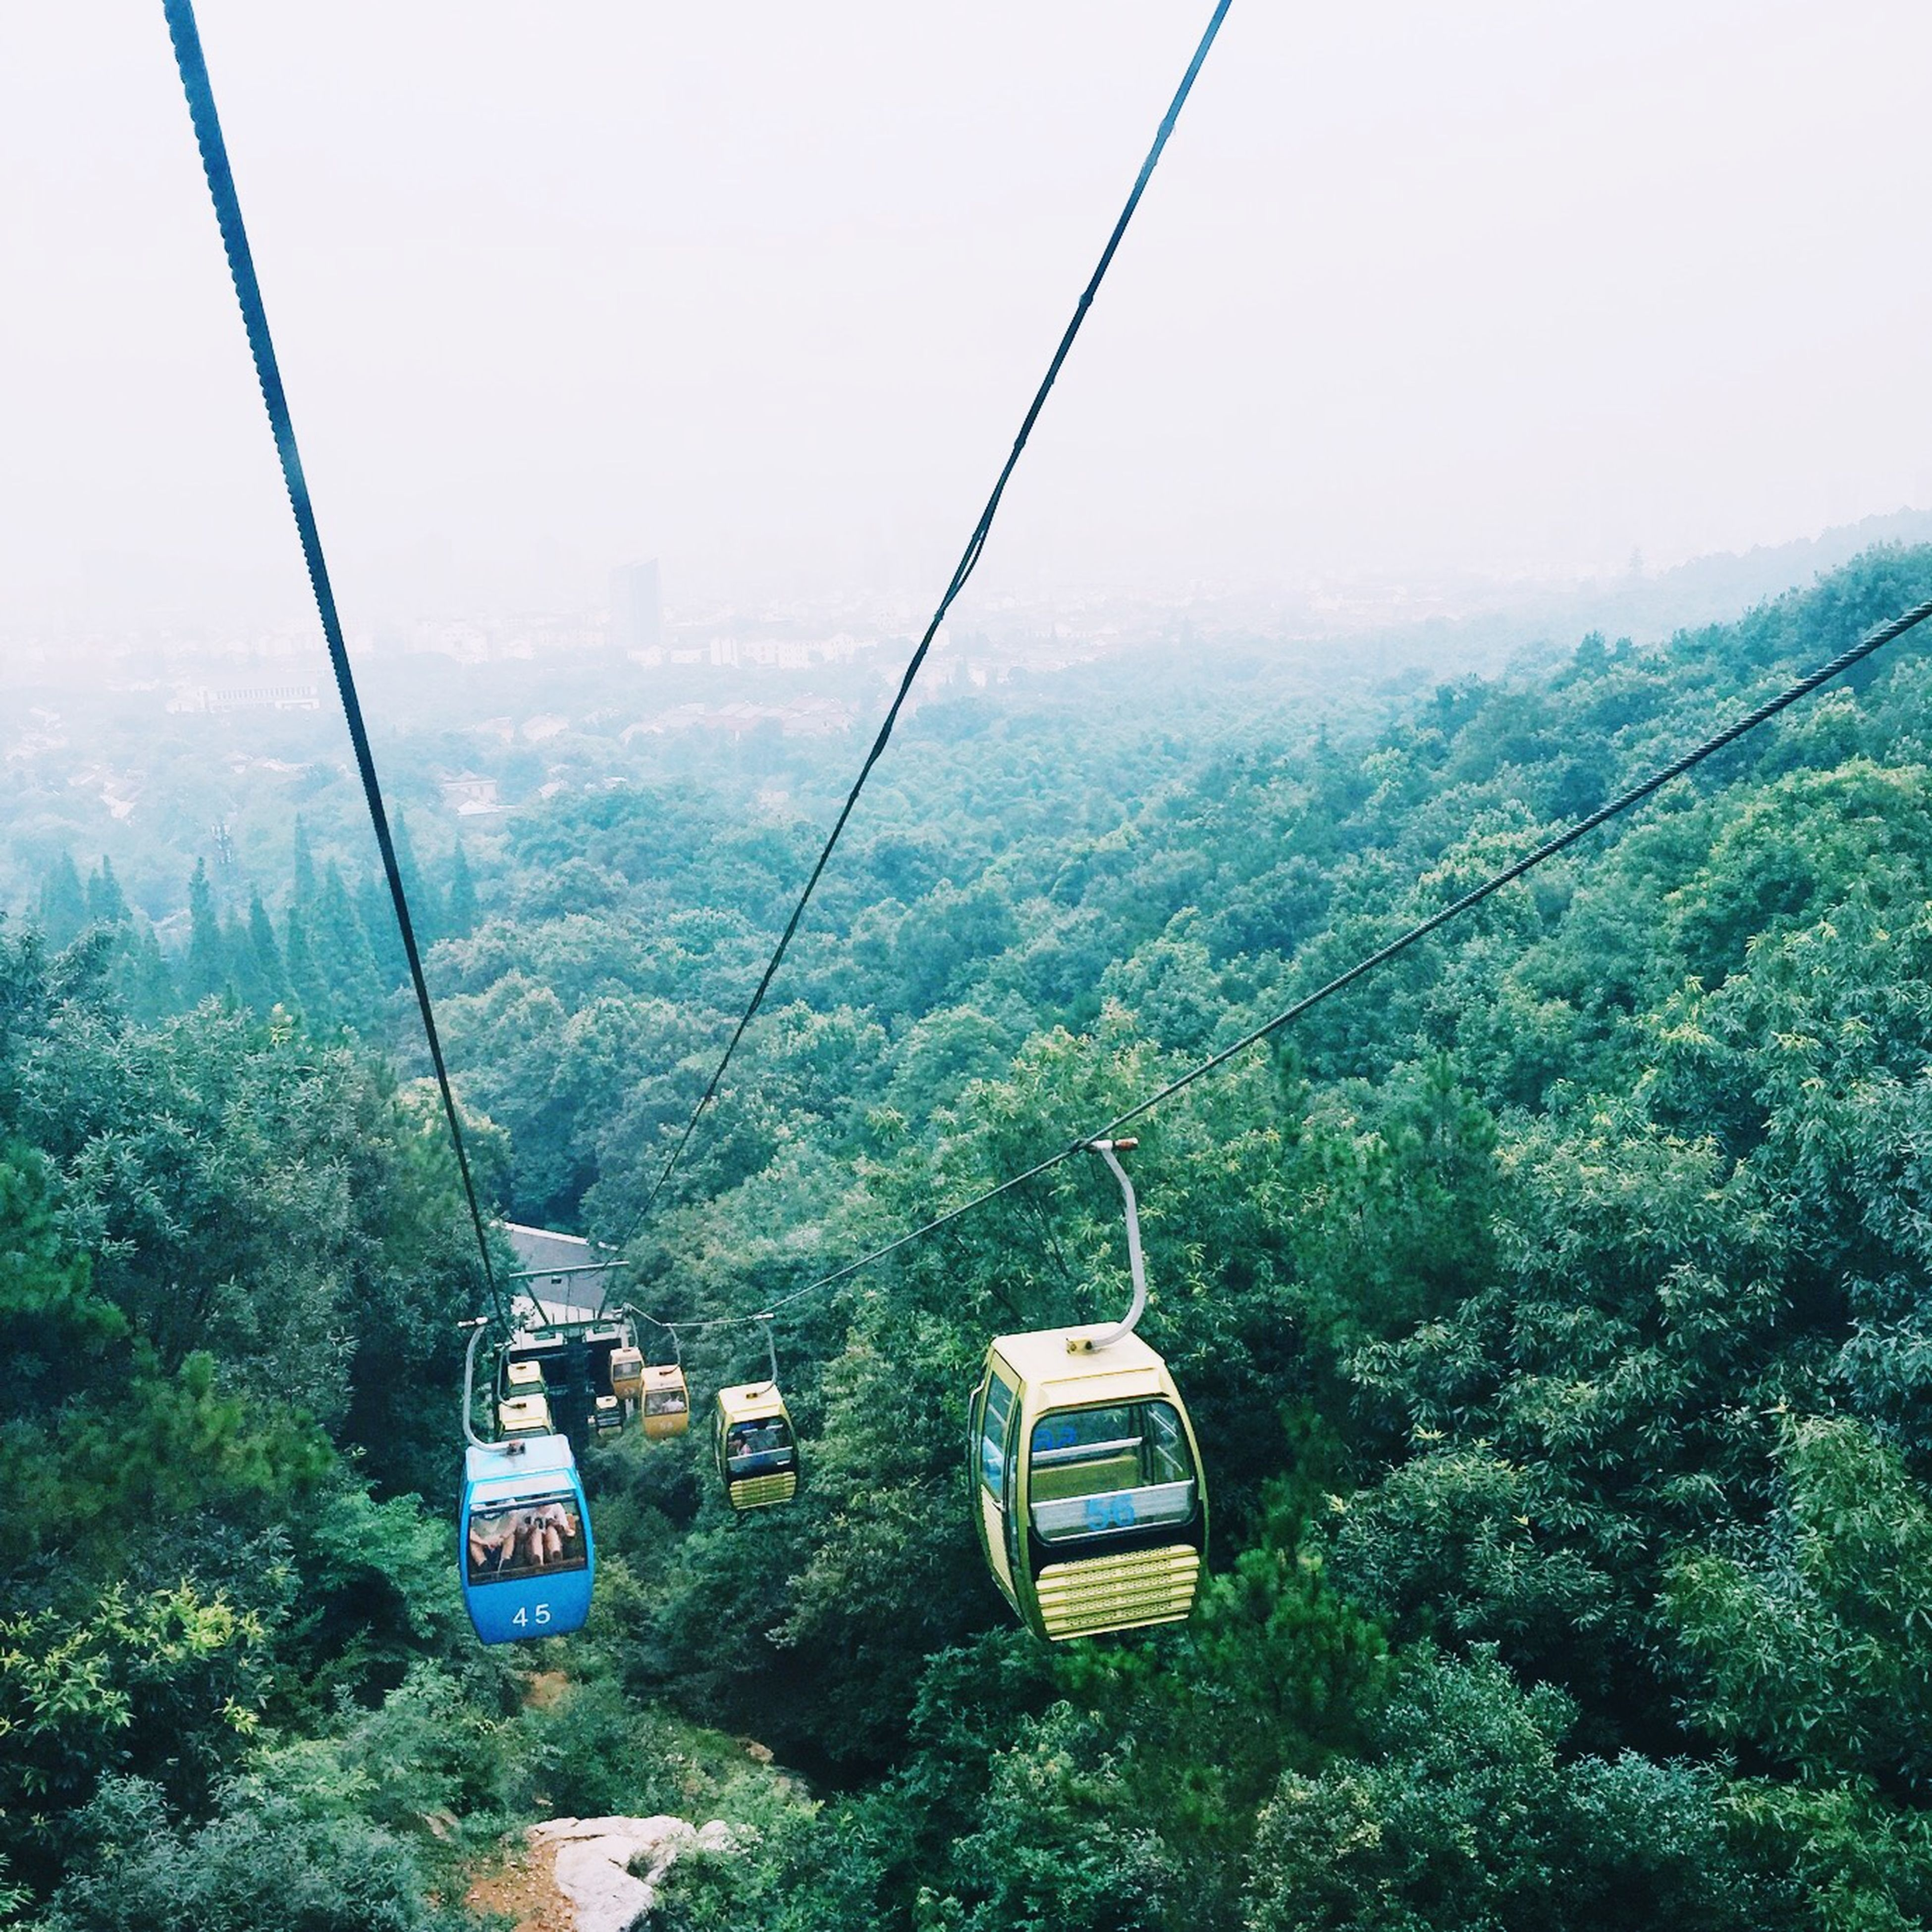 tree, mountain, transportation, green color, mode of transport, overhead cable car, nature, fog, tranquility, tranquil scene, scenics, lush foliage, growth, forest, beauty in nature, landscape, non-urban scene, day, high angle view, plant